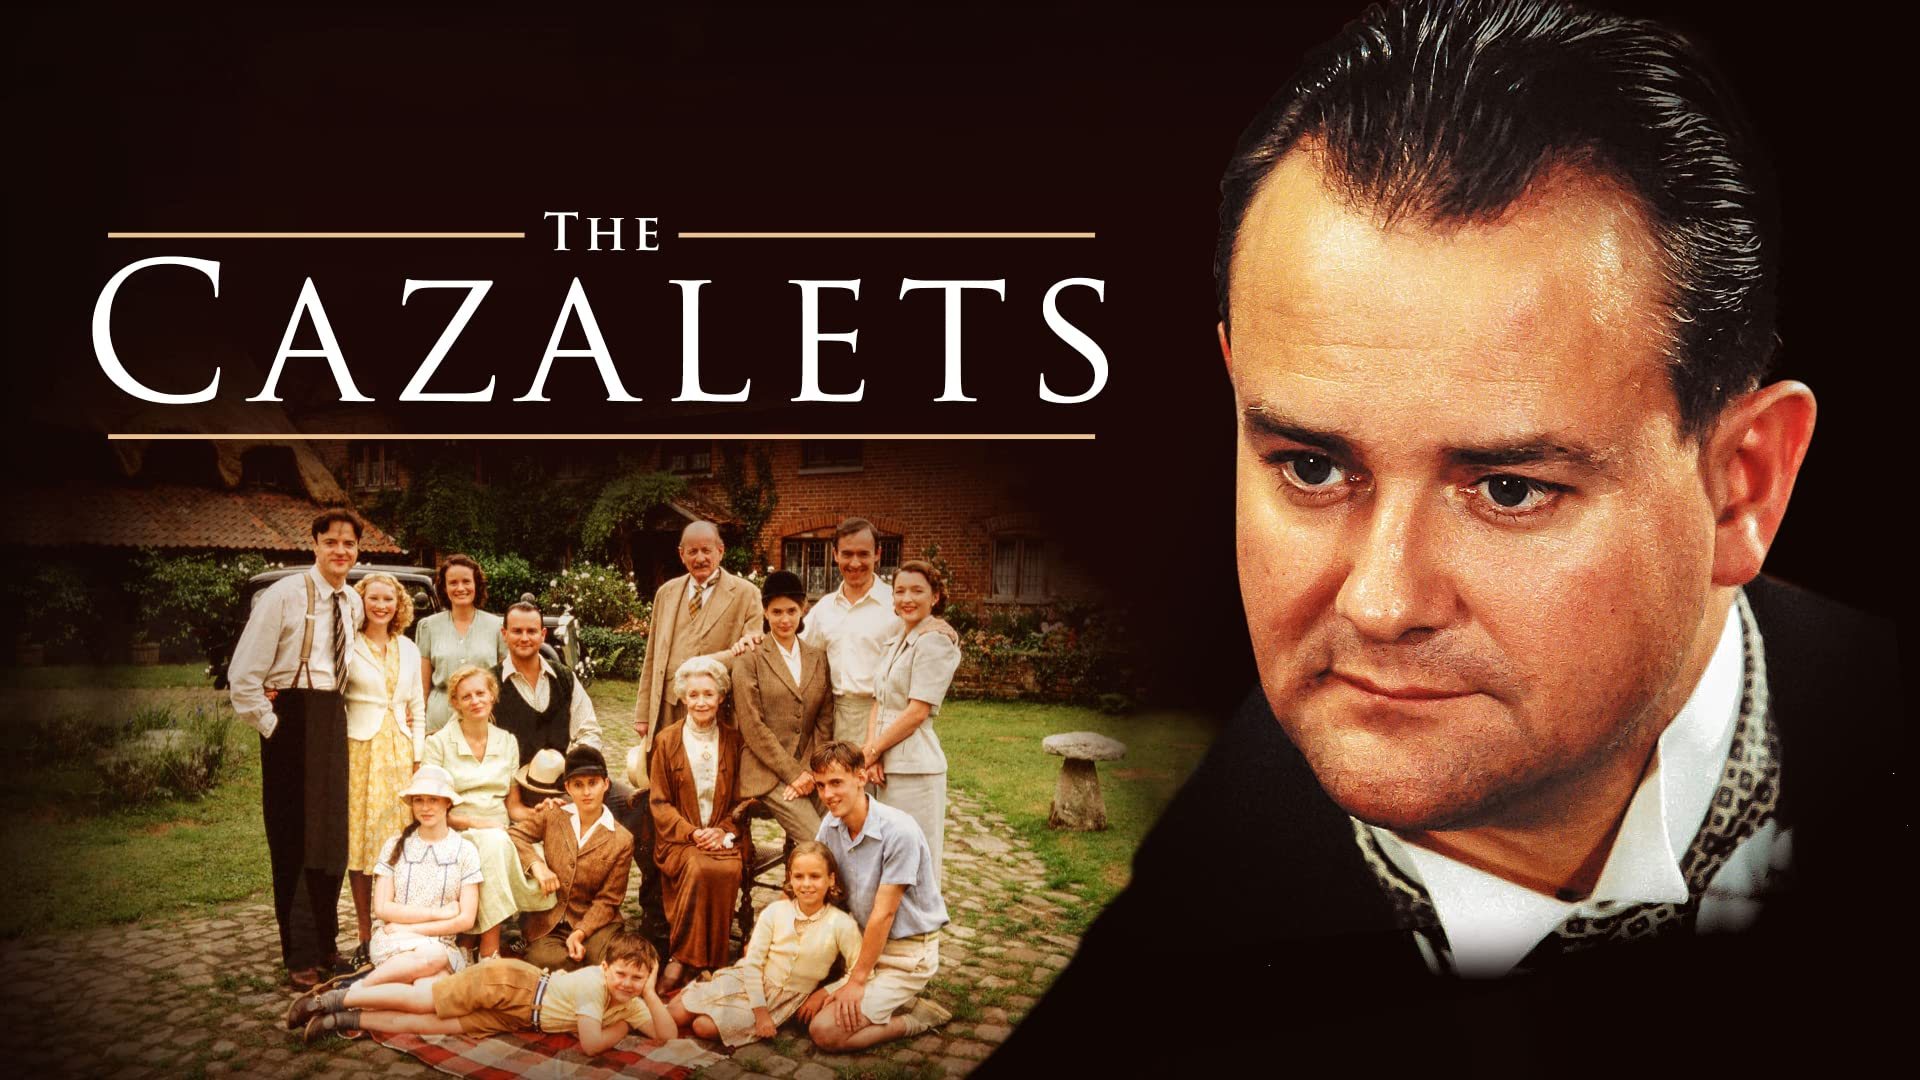 The Cazalets